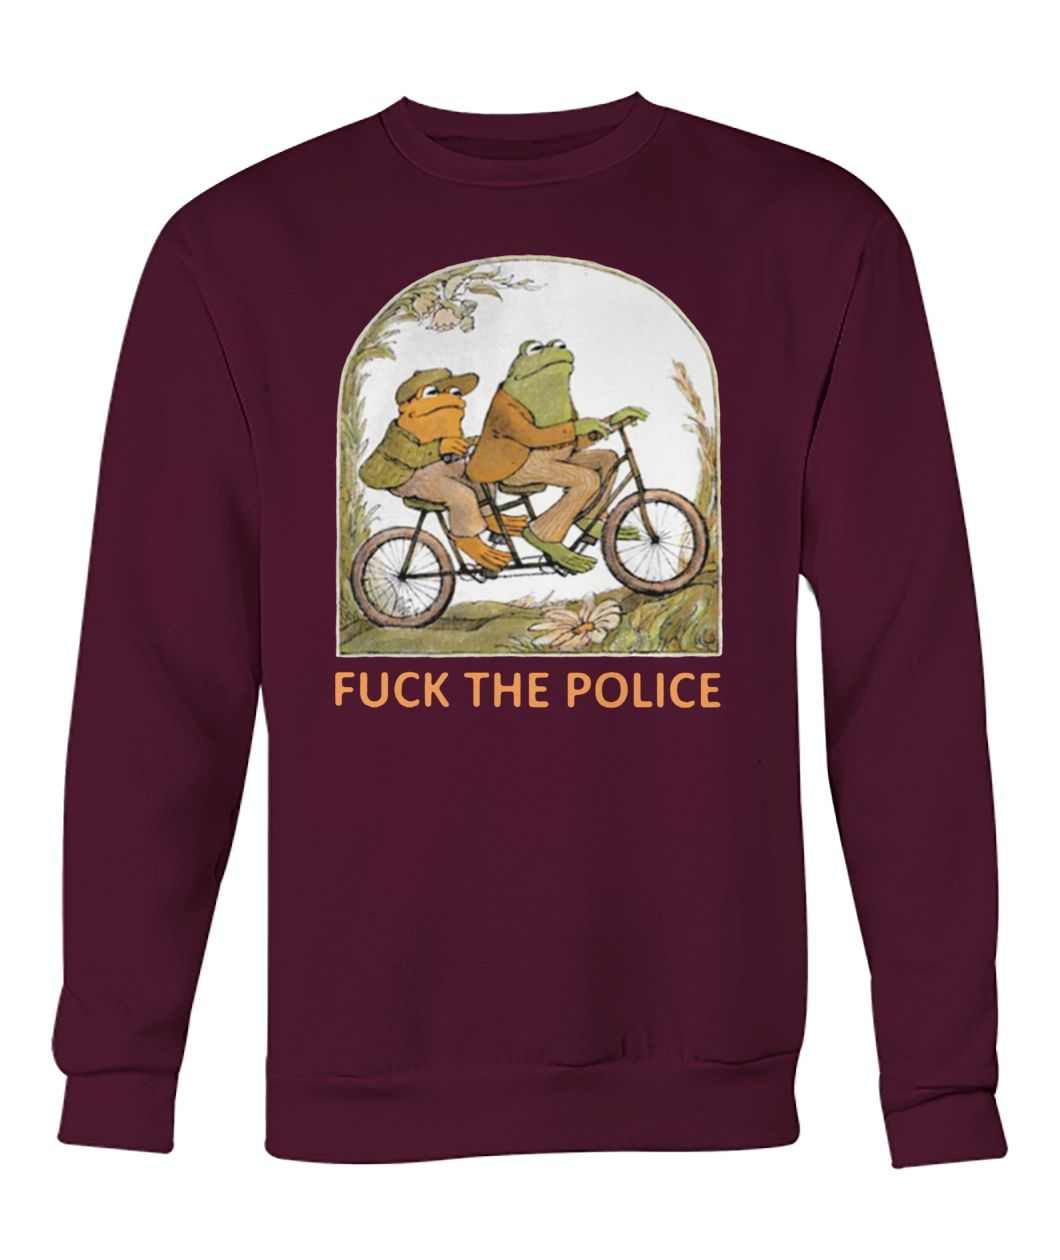 Frog and toad fuck the police crew neck sweatshirt